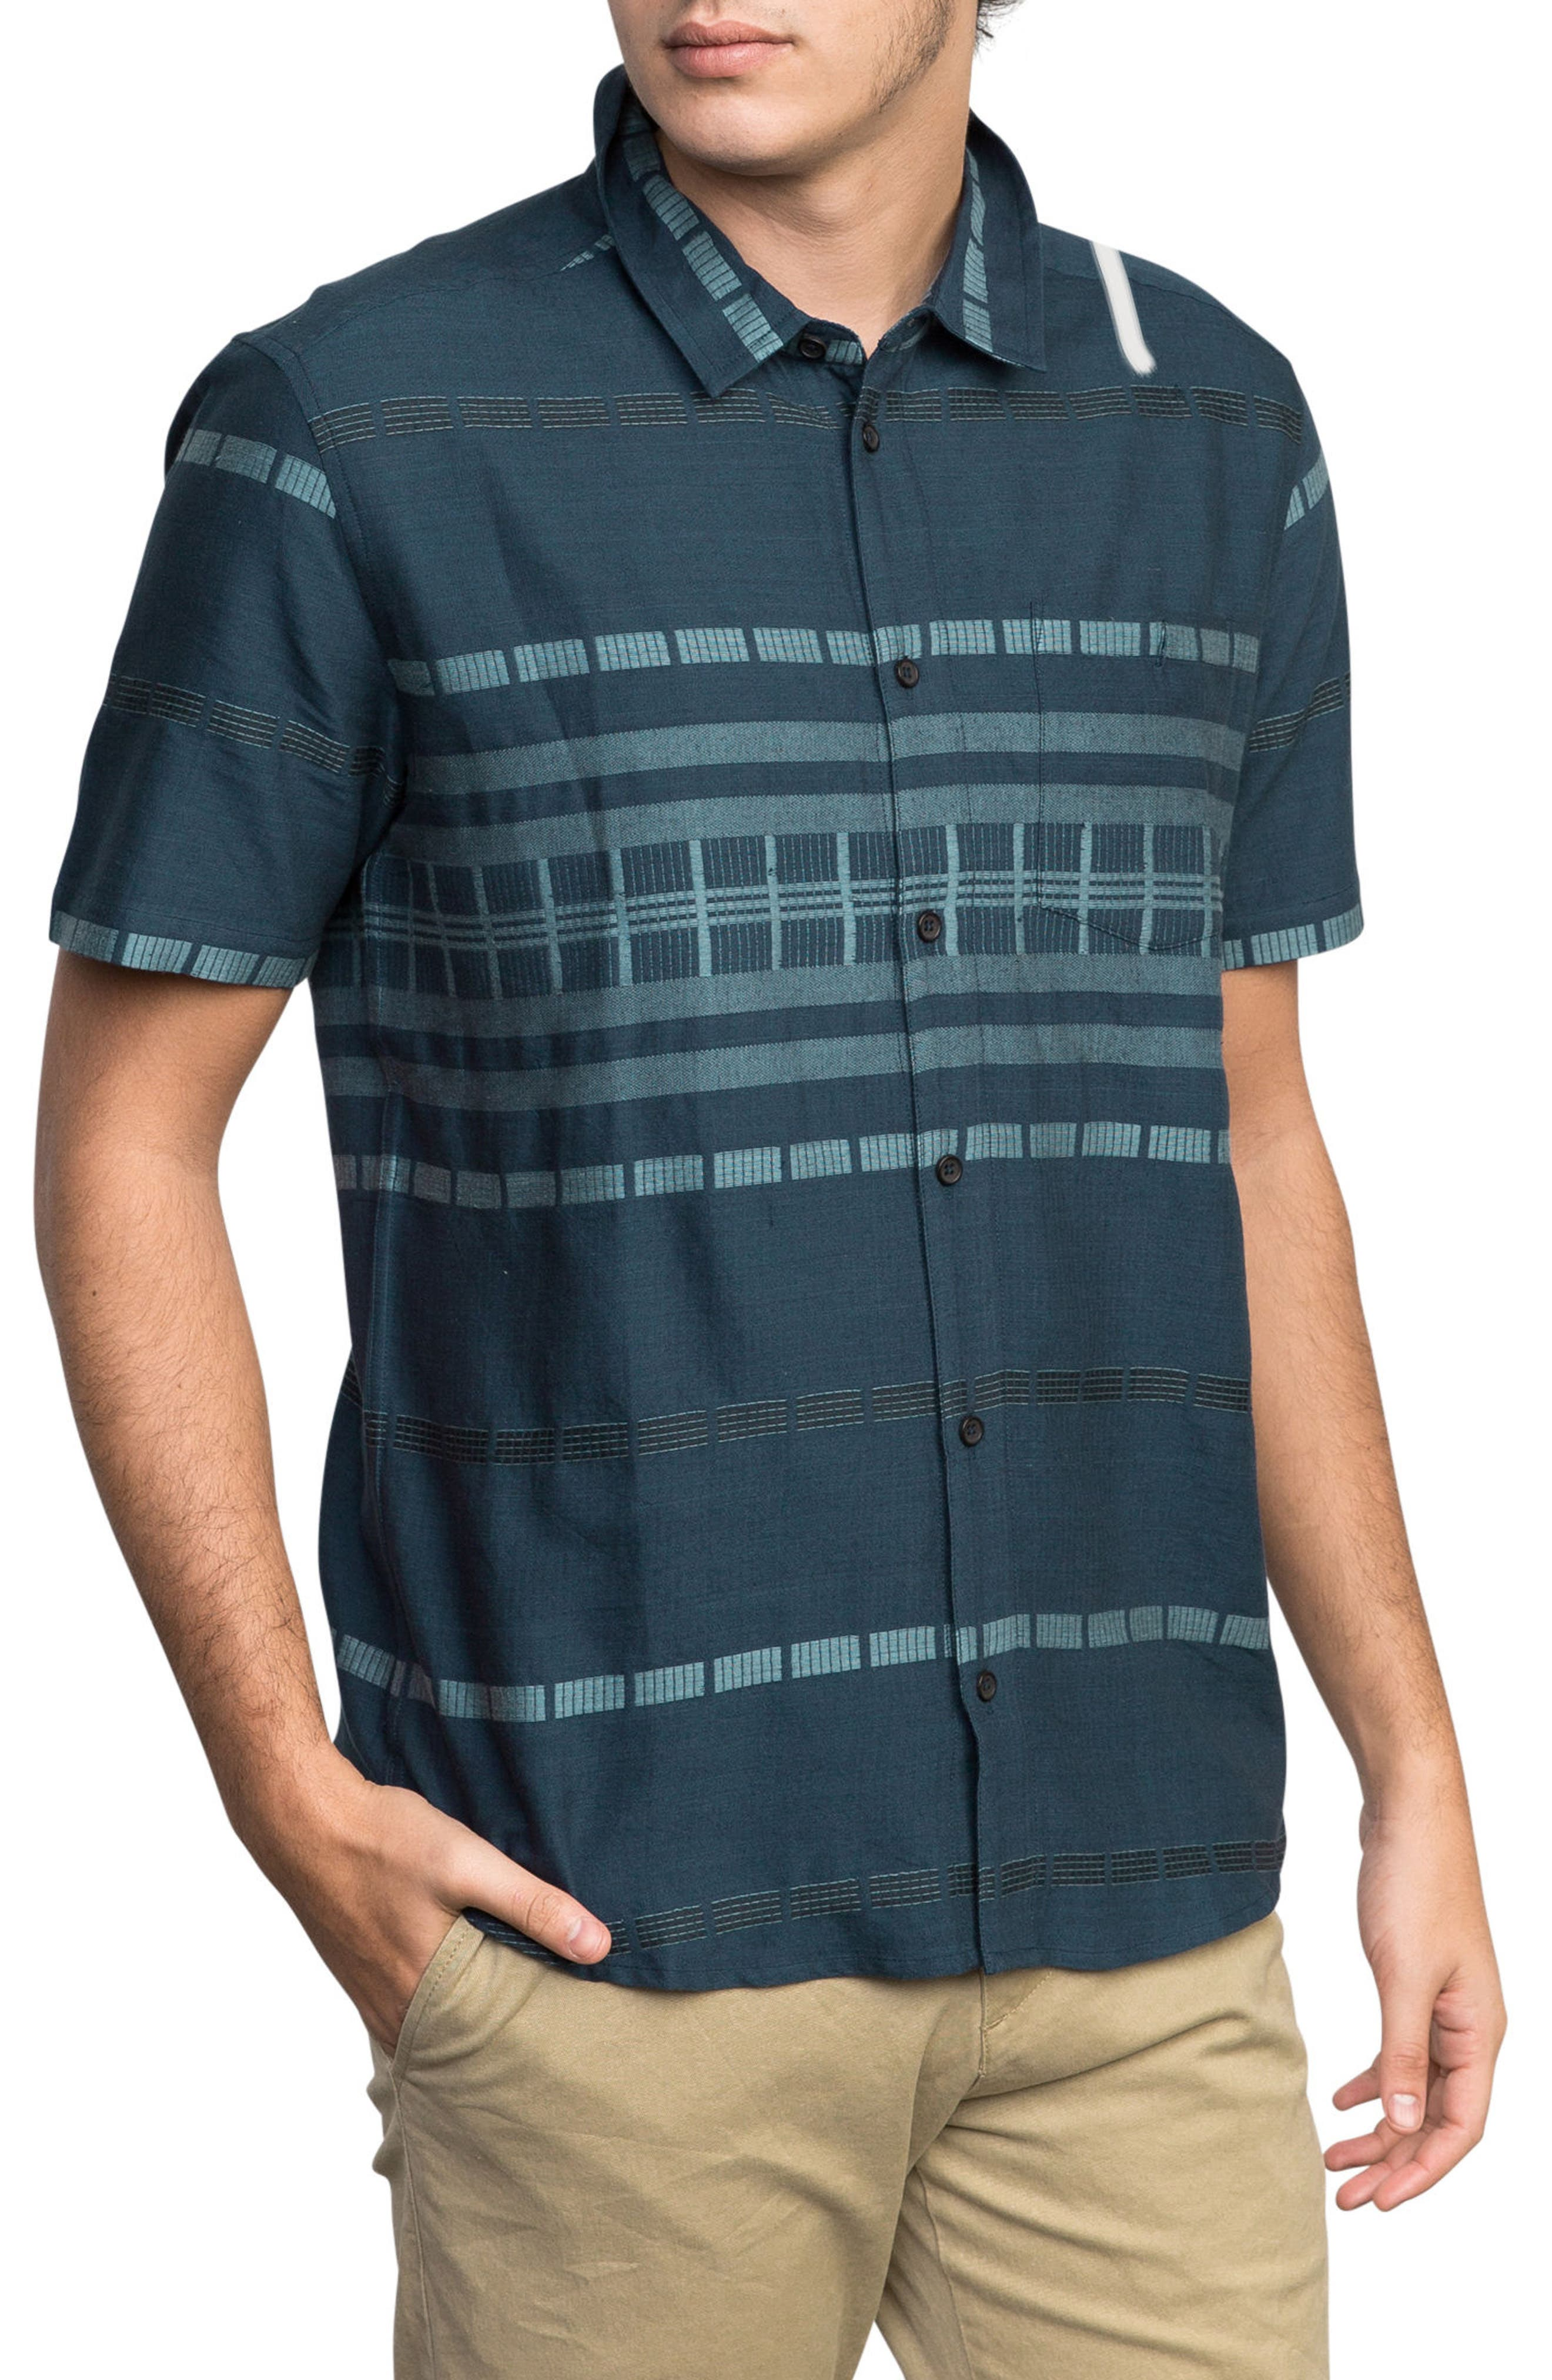 Krazy Kat Woven Shirt,                             Alternate thumbnail 3, color,                             CLASSIC INDIGO